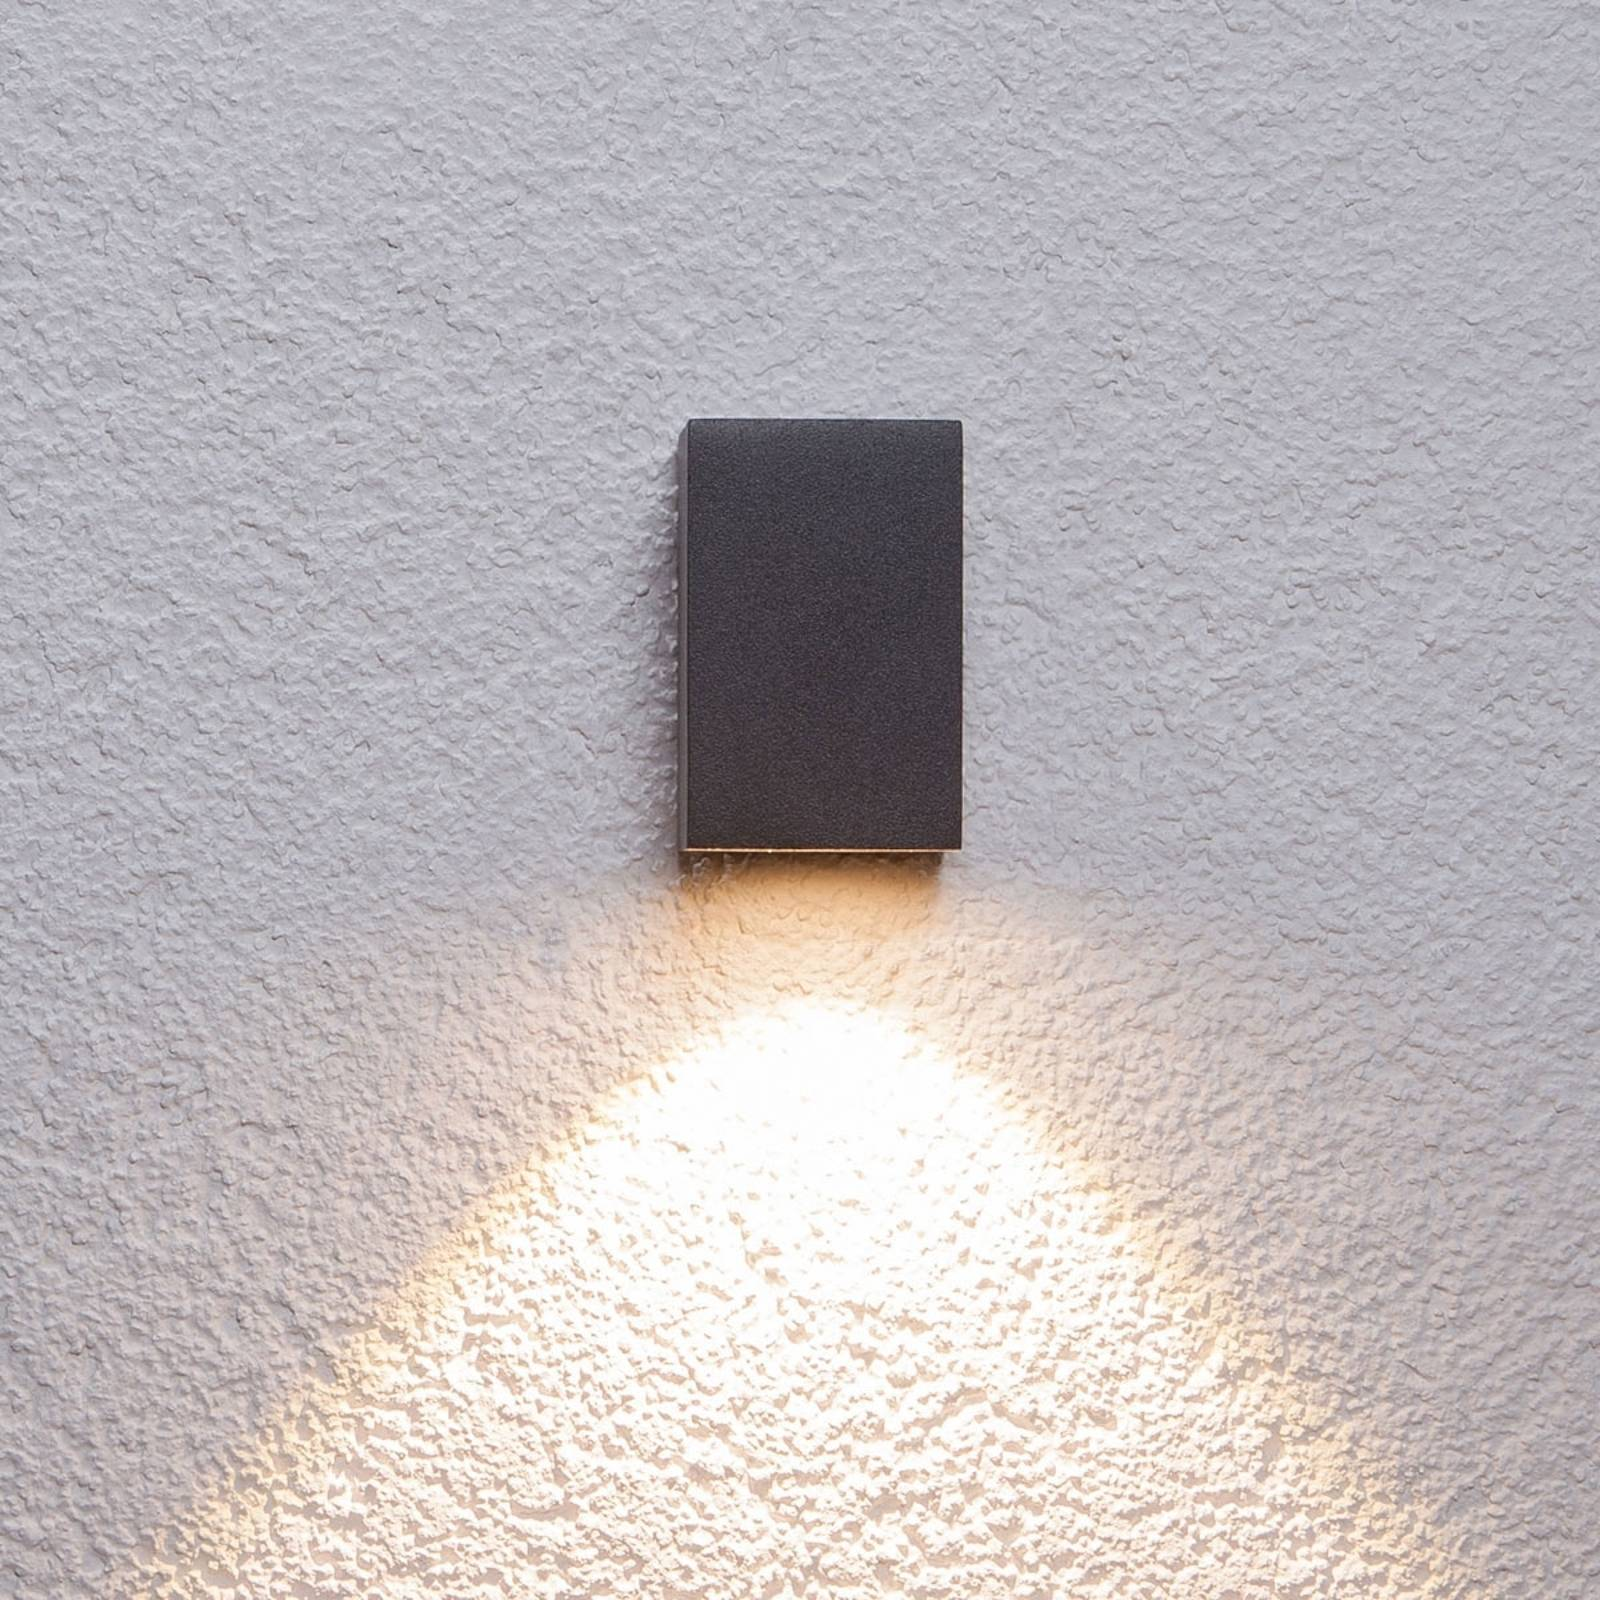 Graphite grey LED outdoor wall light Tavi, 9.5 cm from Lucande